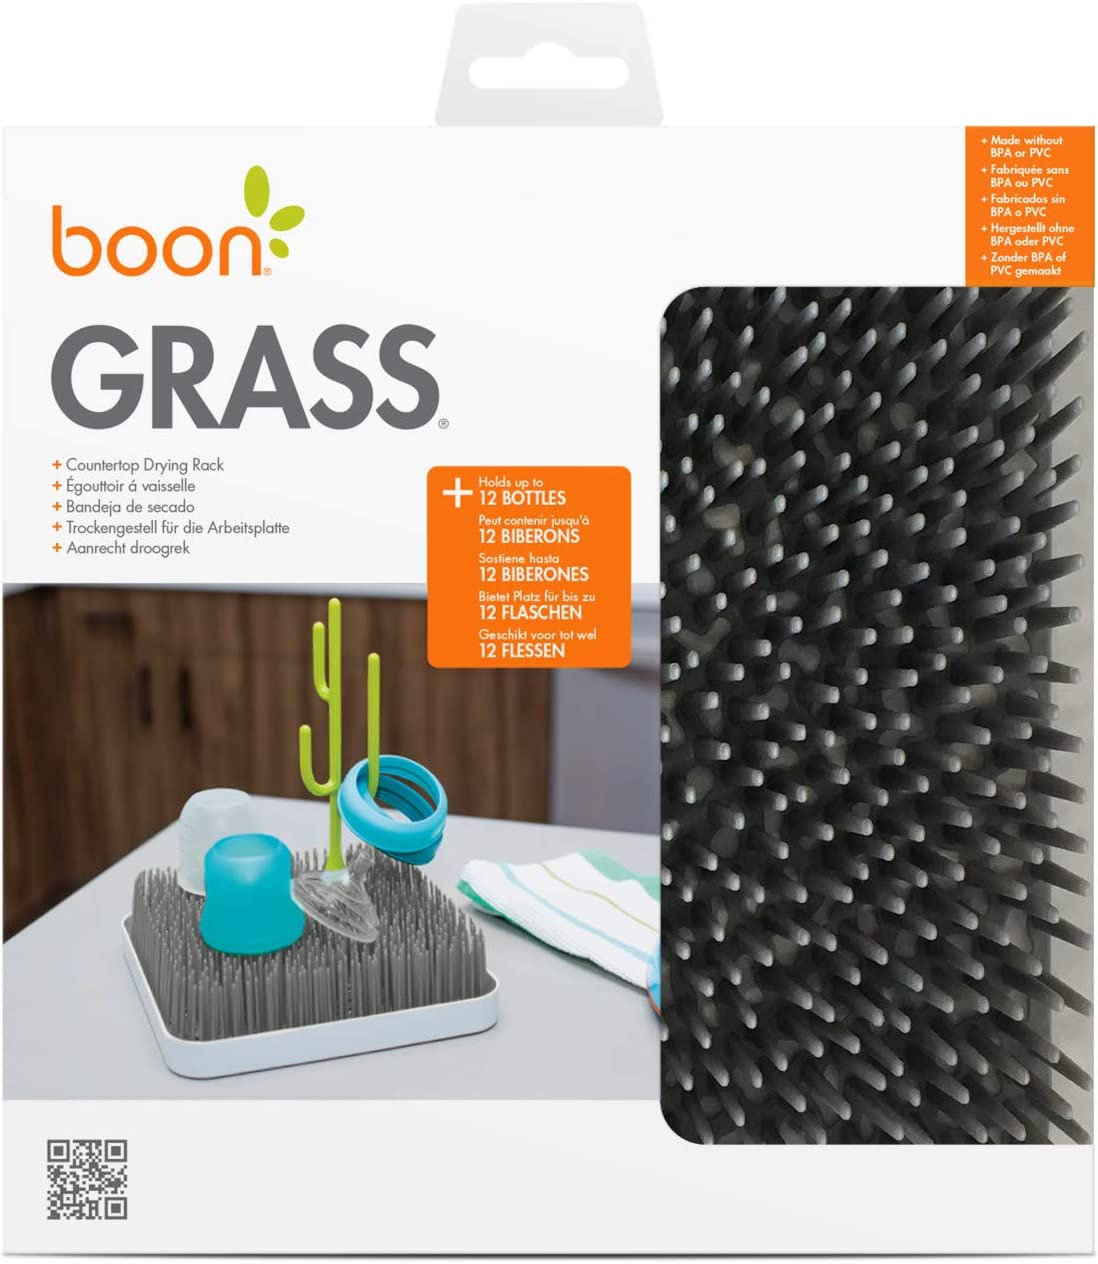 BPA Free Baby Essentials for Parents to Be Ideal Baby Shower Gift for New Parents Stylish Nursery Accessories Grey Boon Grass Baby Bottle Dryer Rack